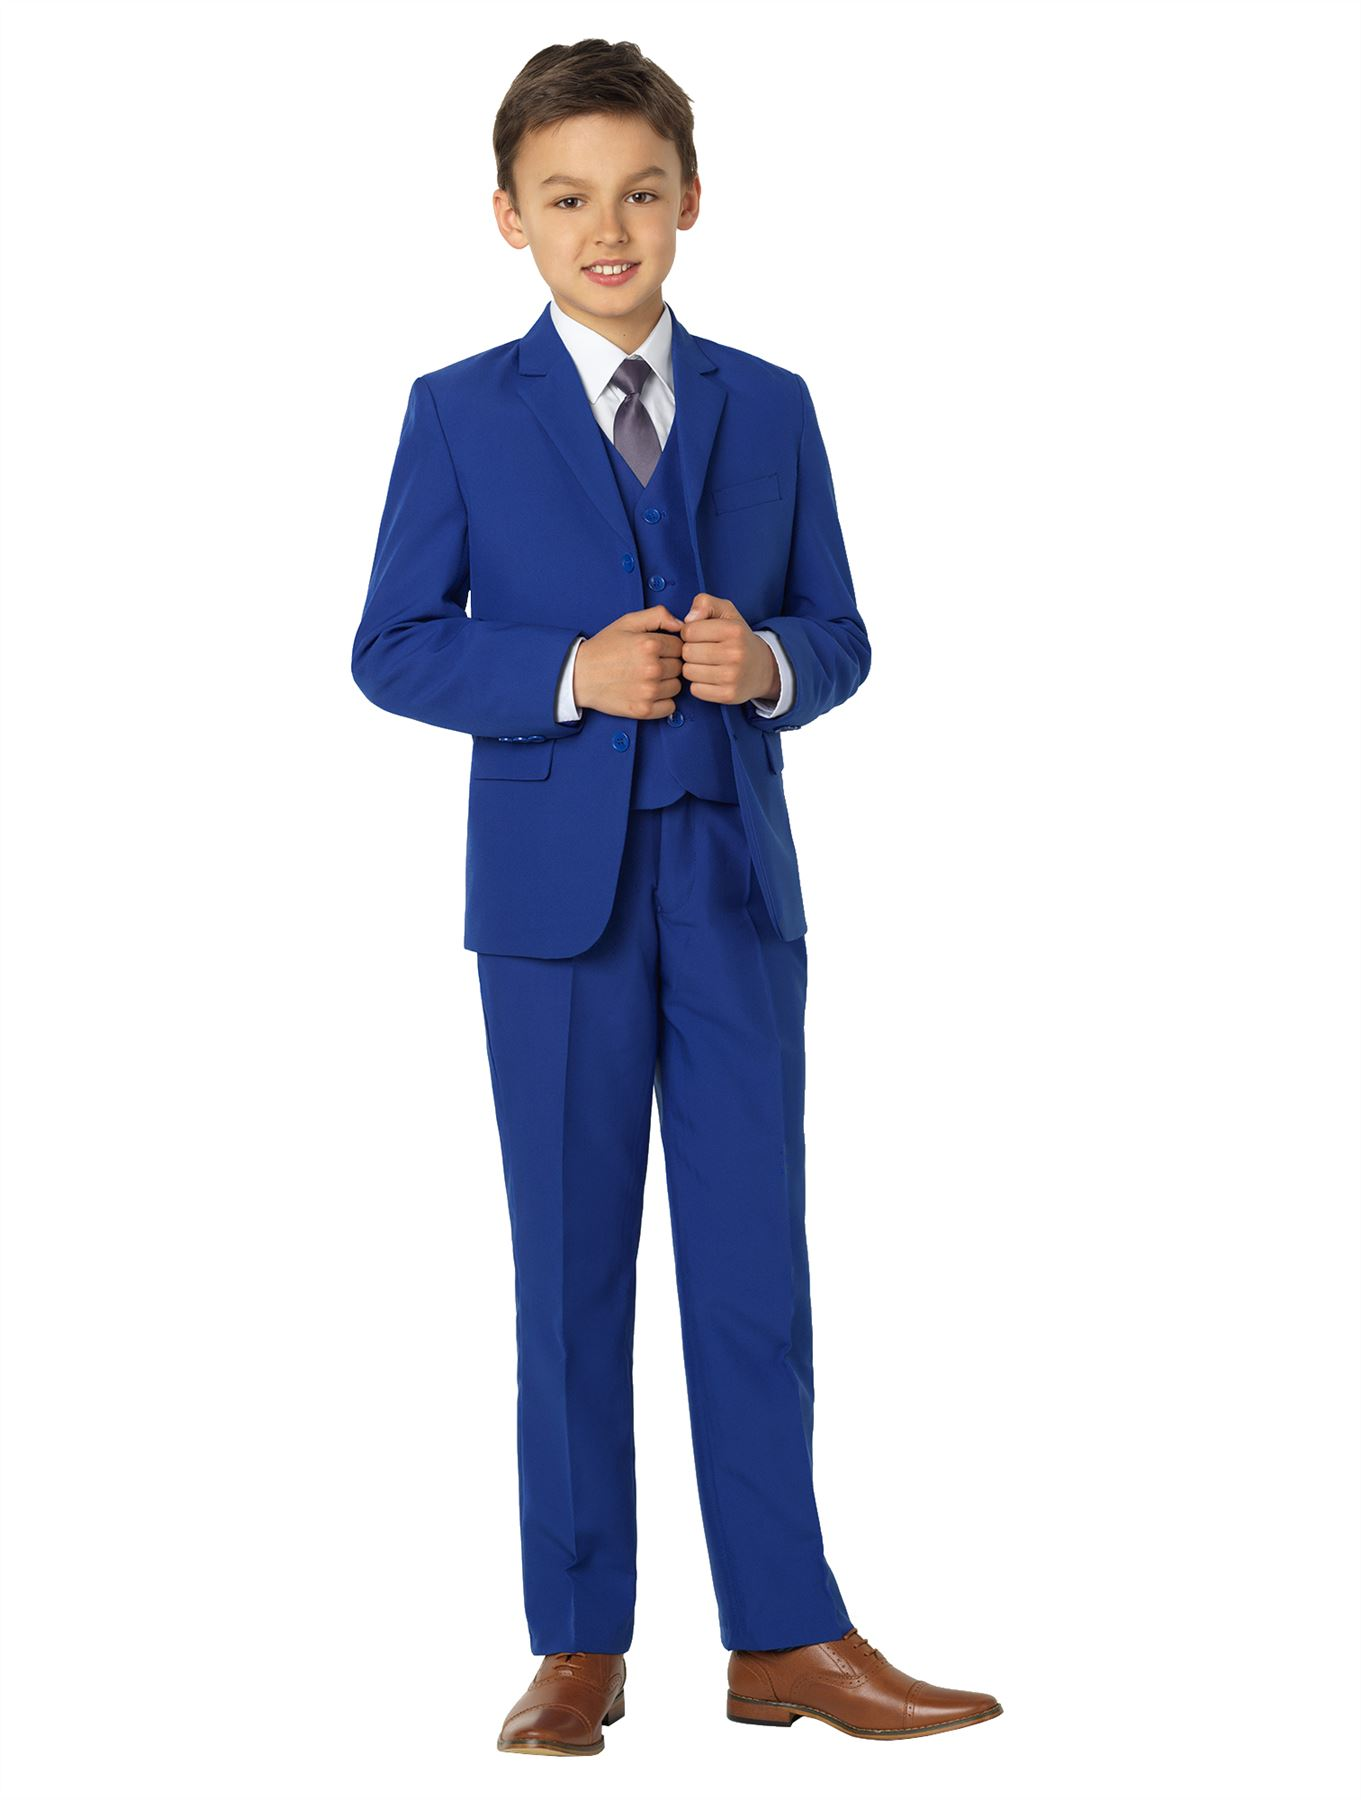 Boys Blue Suits, Boys Suits, Page Boy Suits, Prom Suits, Boys ...